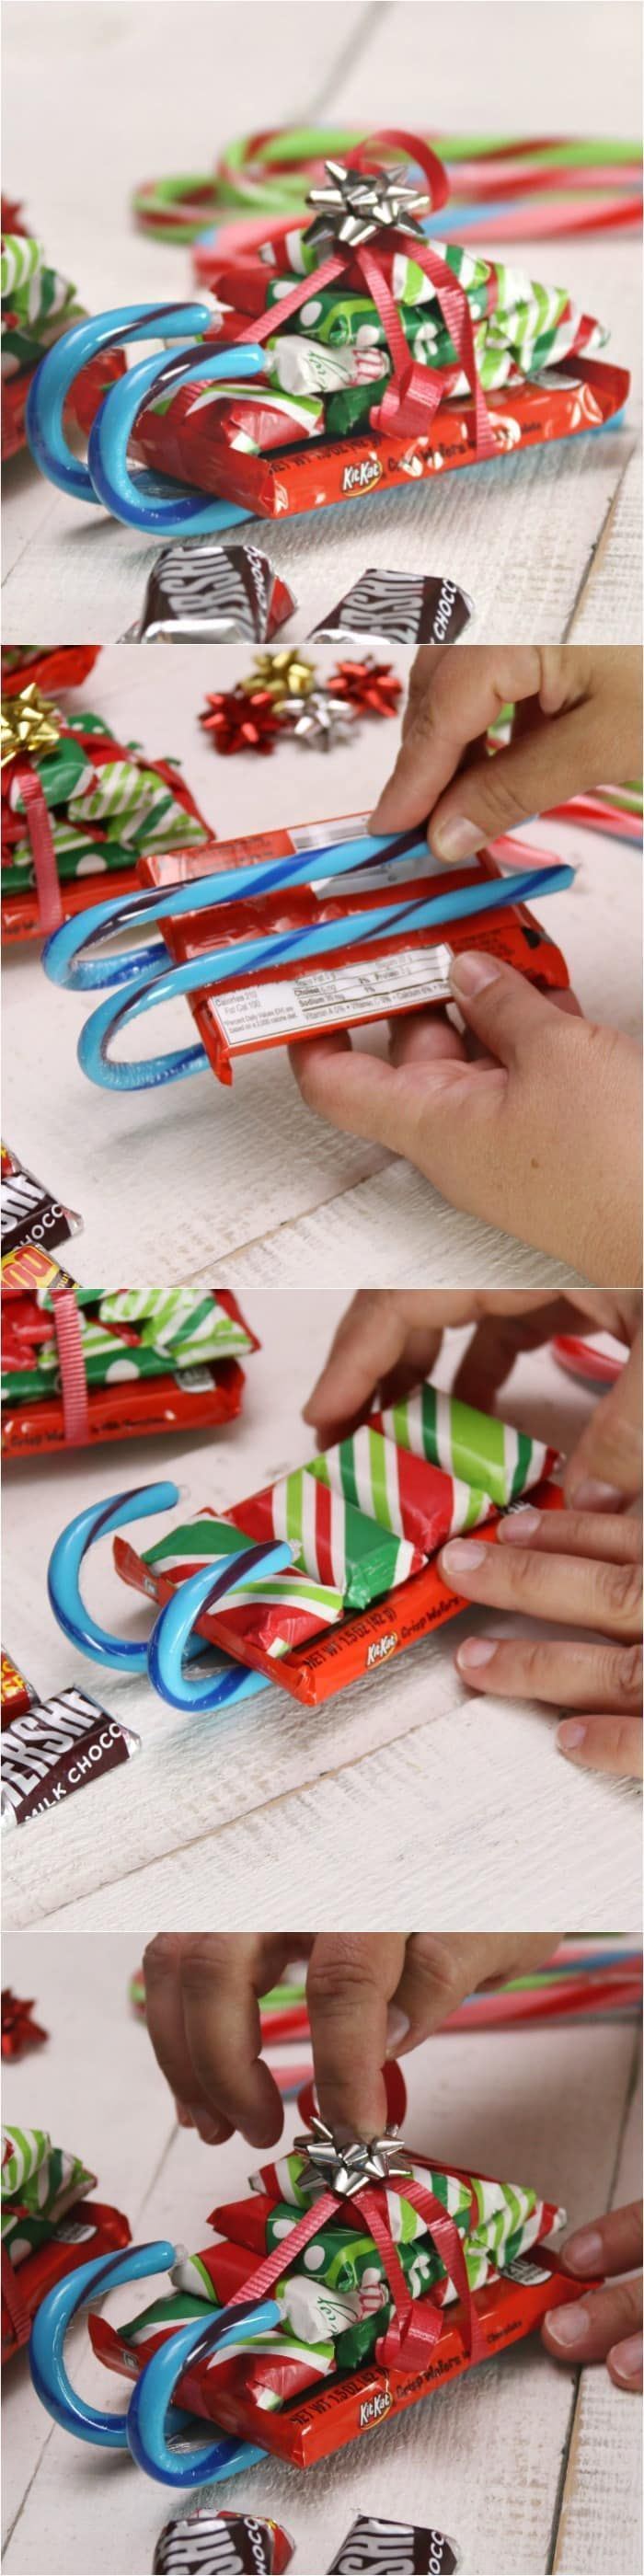 Candy Cane Decorations Pinterest How To Make Candy Cane Sleighs With Candy Bars For Christmas